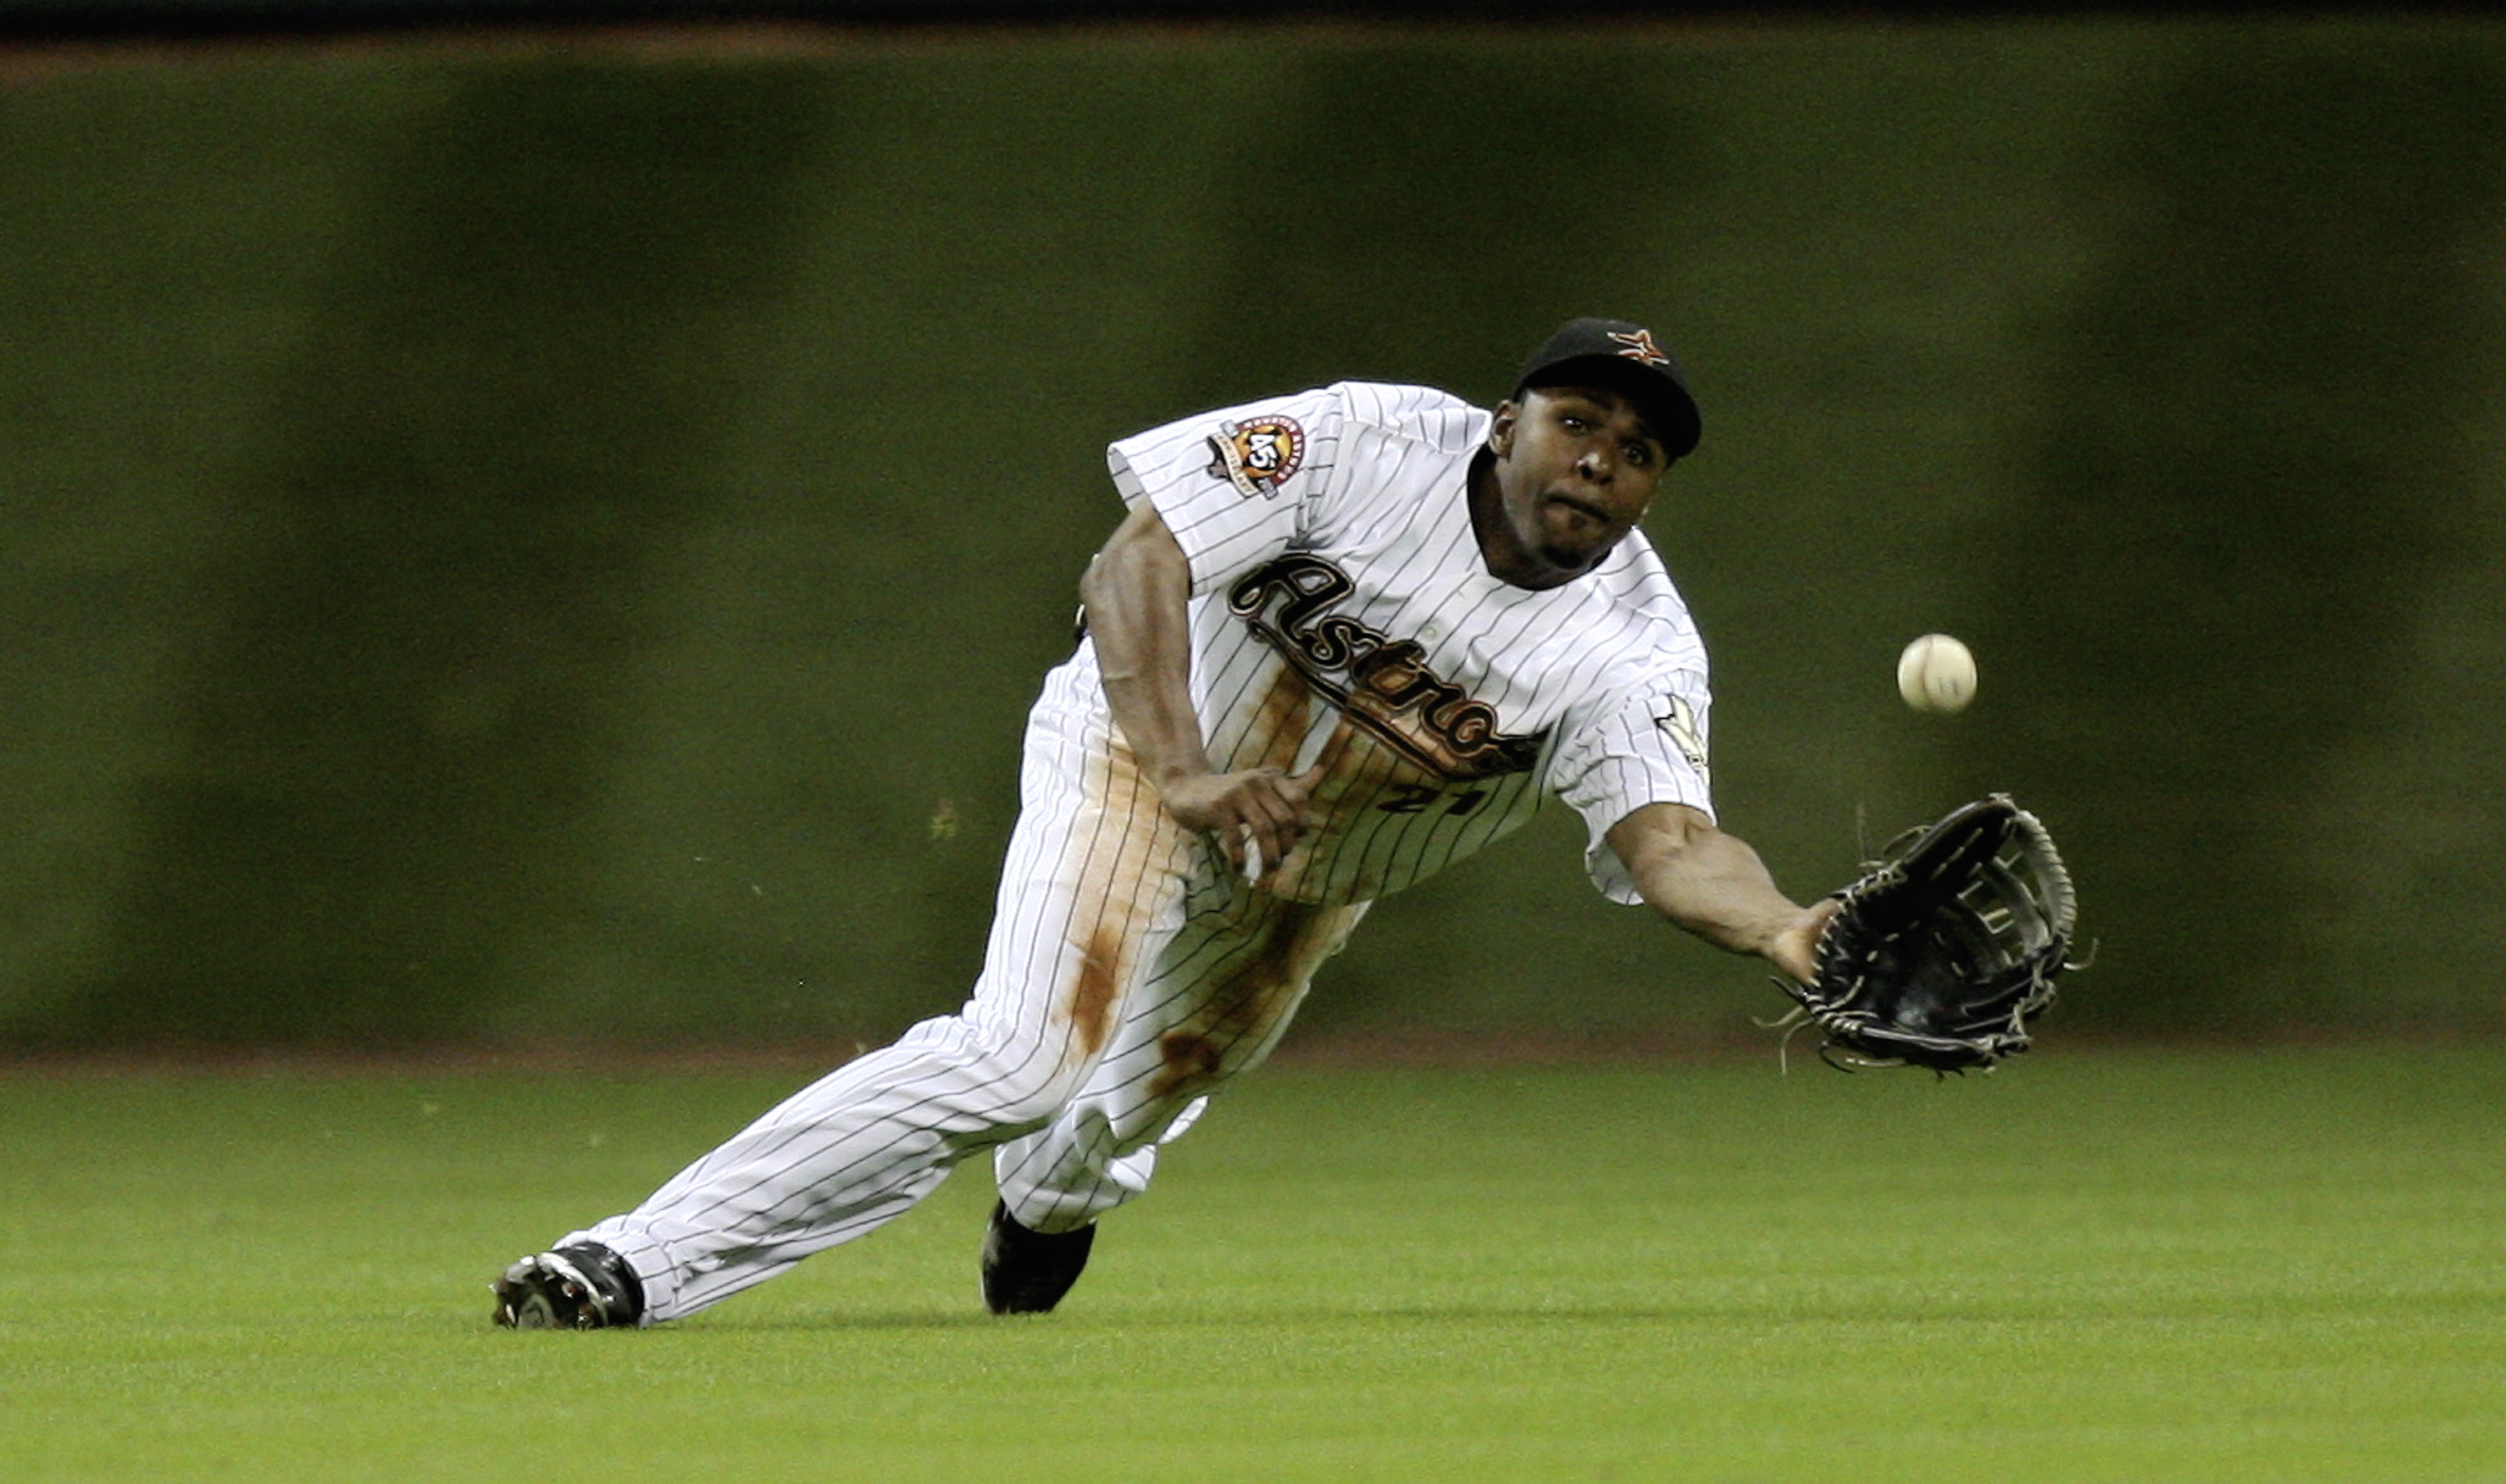 HOUSTON - JULY 30:  Center fielder Michael Bourn #21 of the Houston Astros makes a diving catch on a ball hit by Prince Fielder of the Milwaukee Brewers in the eighth inning at Minute Maid Park on July 30, 2010 in Houston, Texas.  (Photo by Bob Levey/Gett